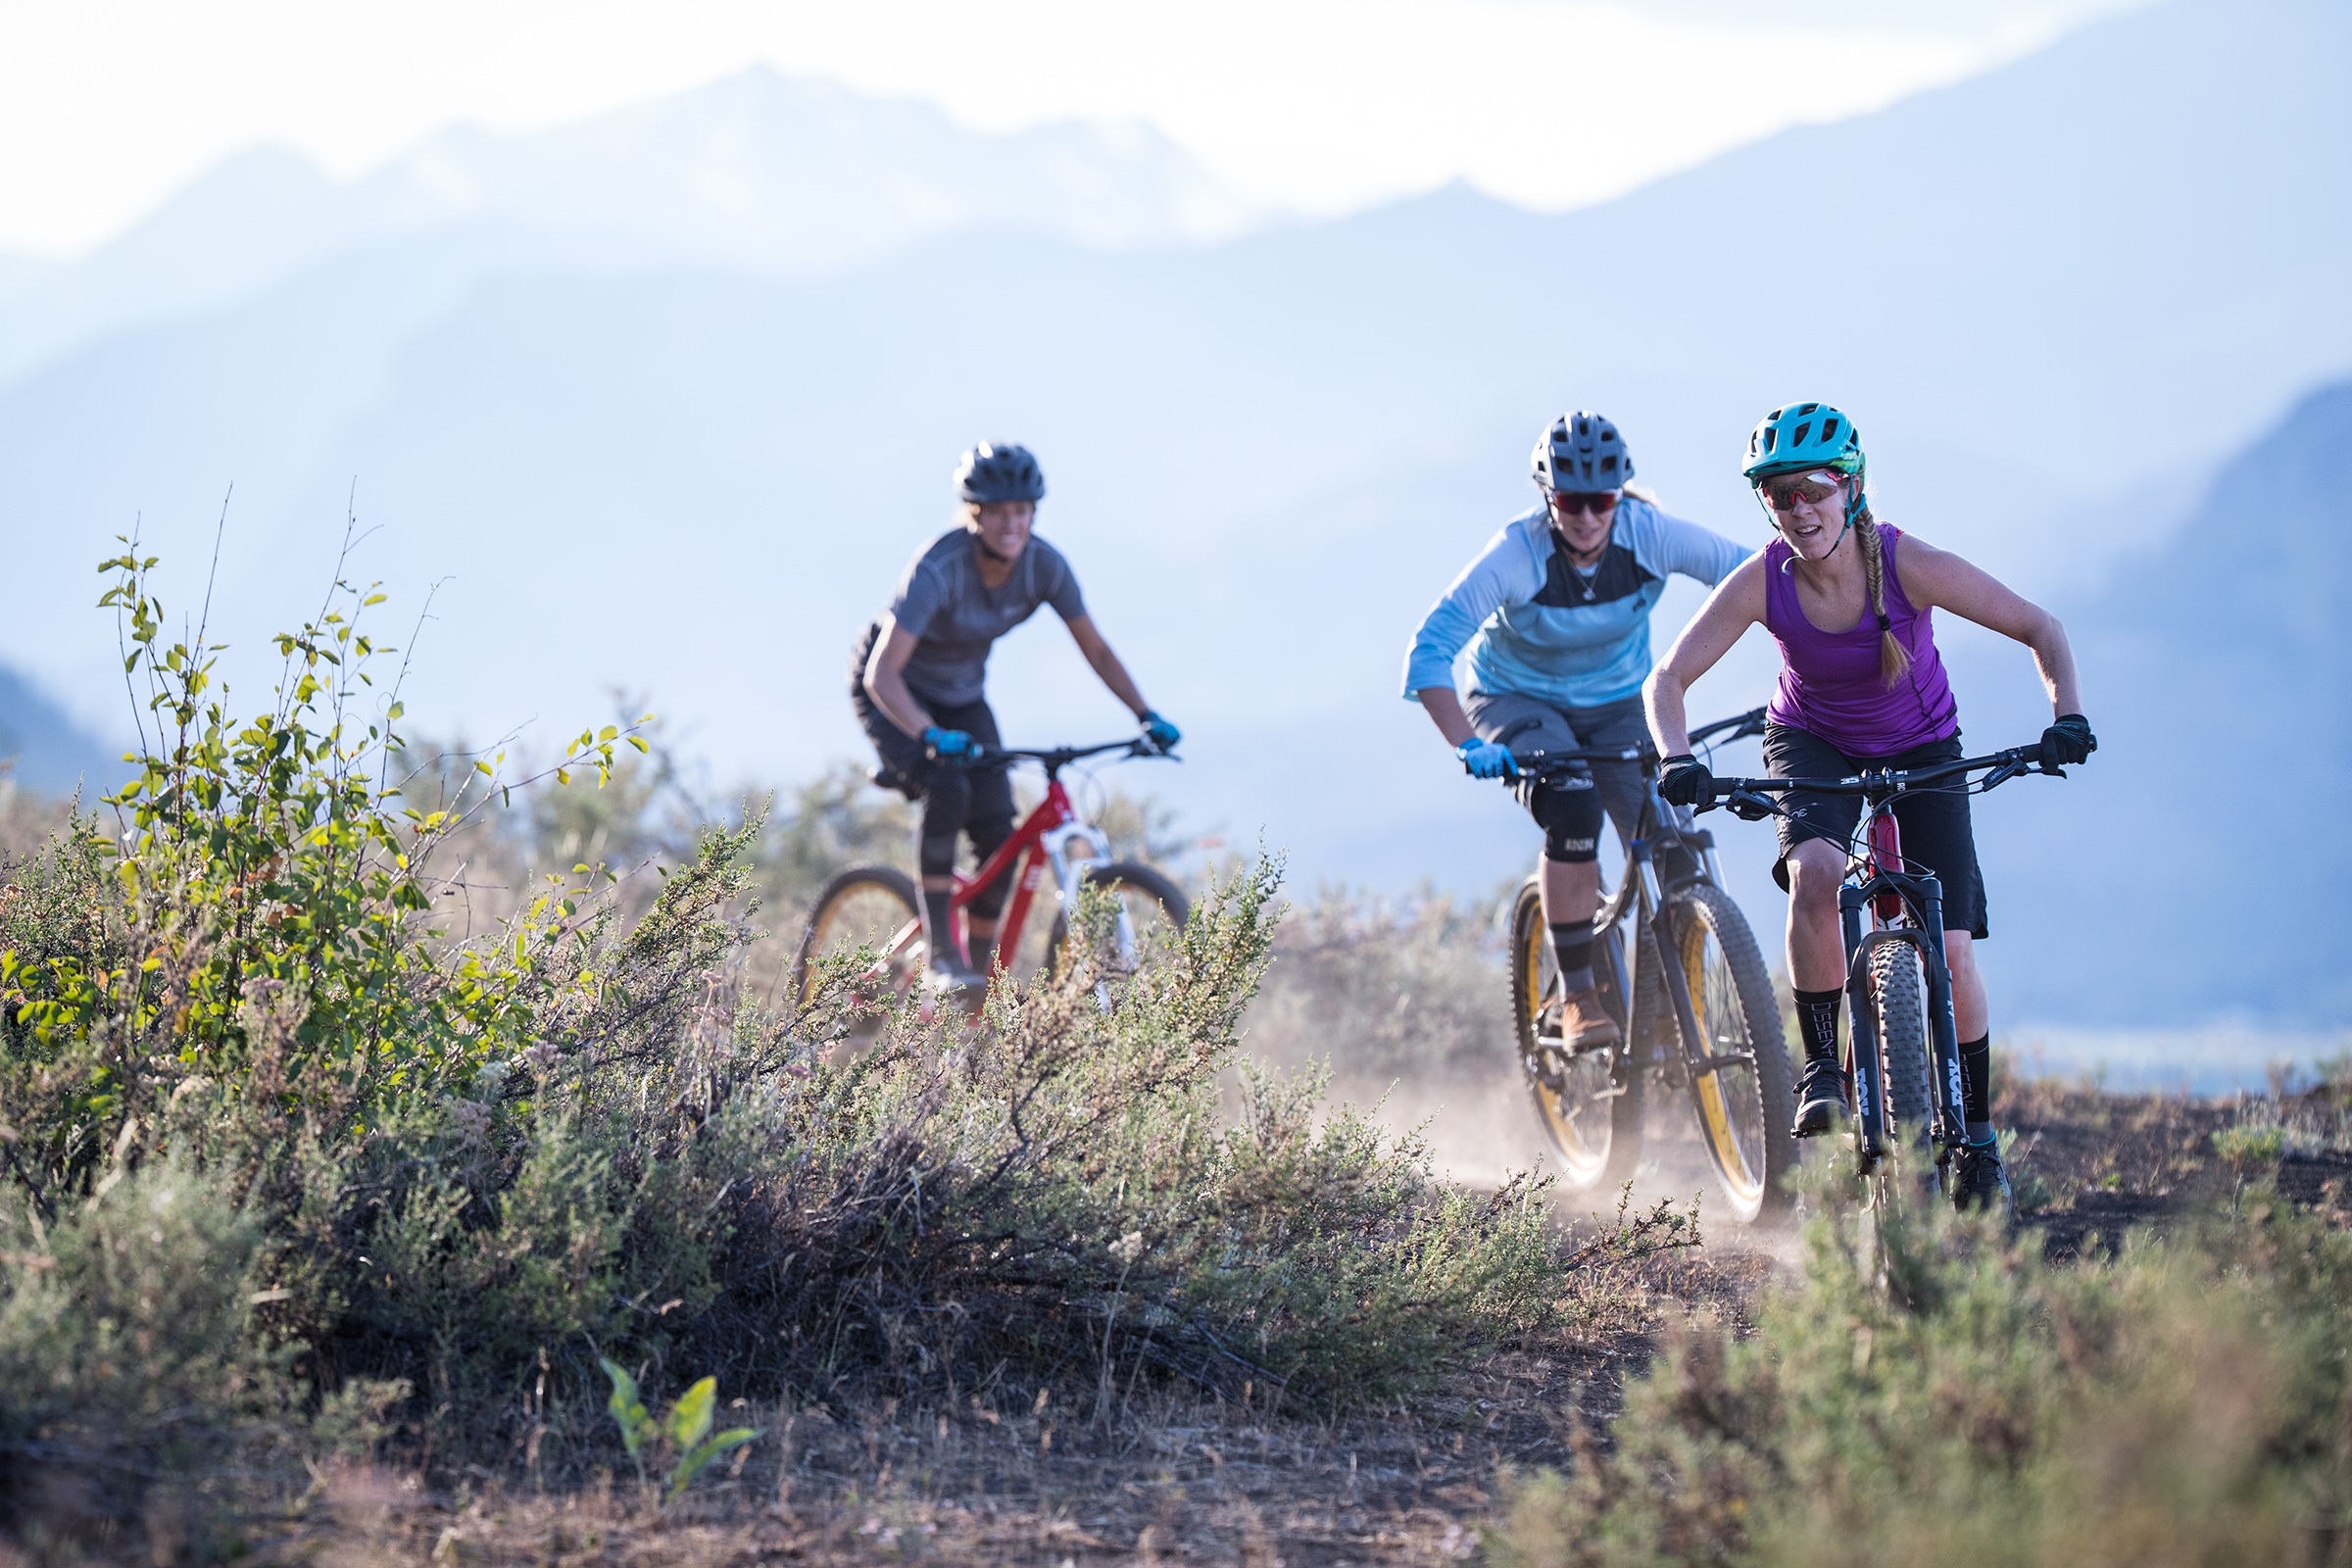 Mountain biking is great on its own, but friends make everything better